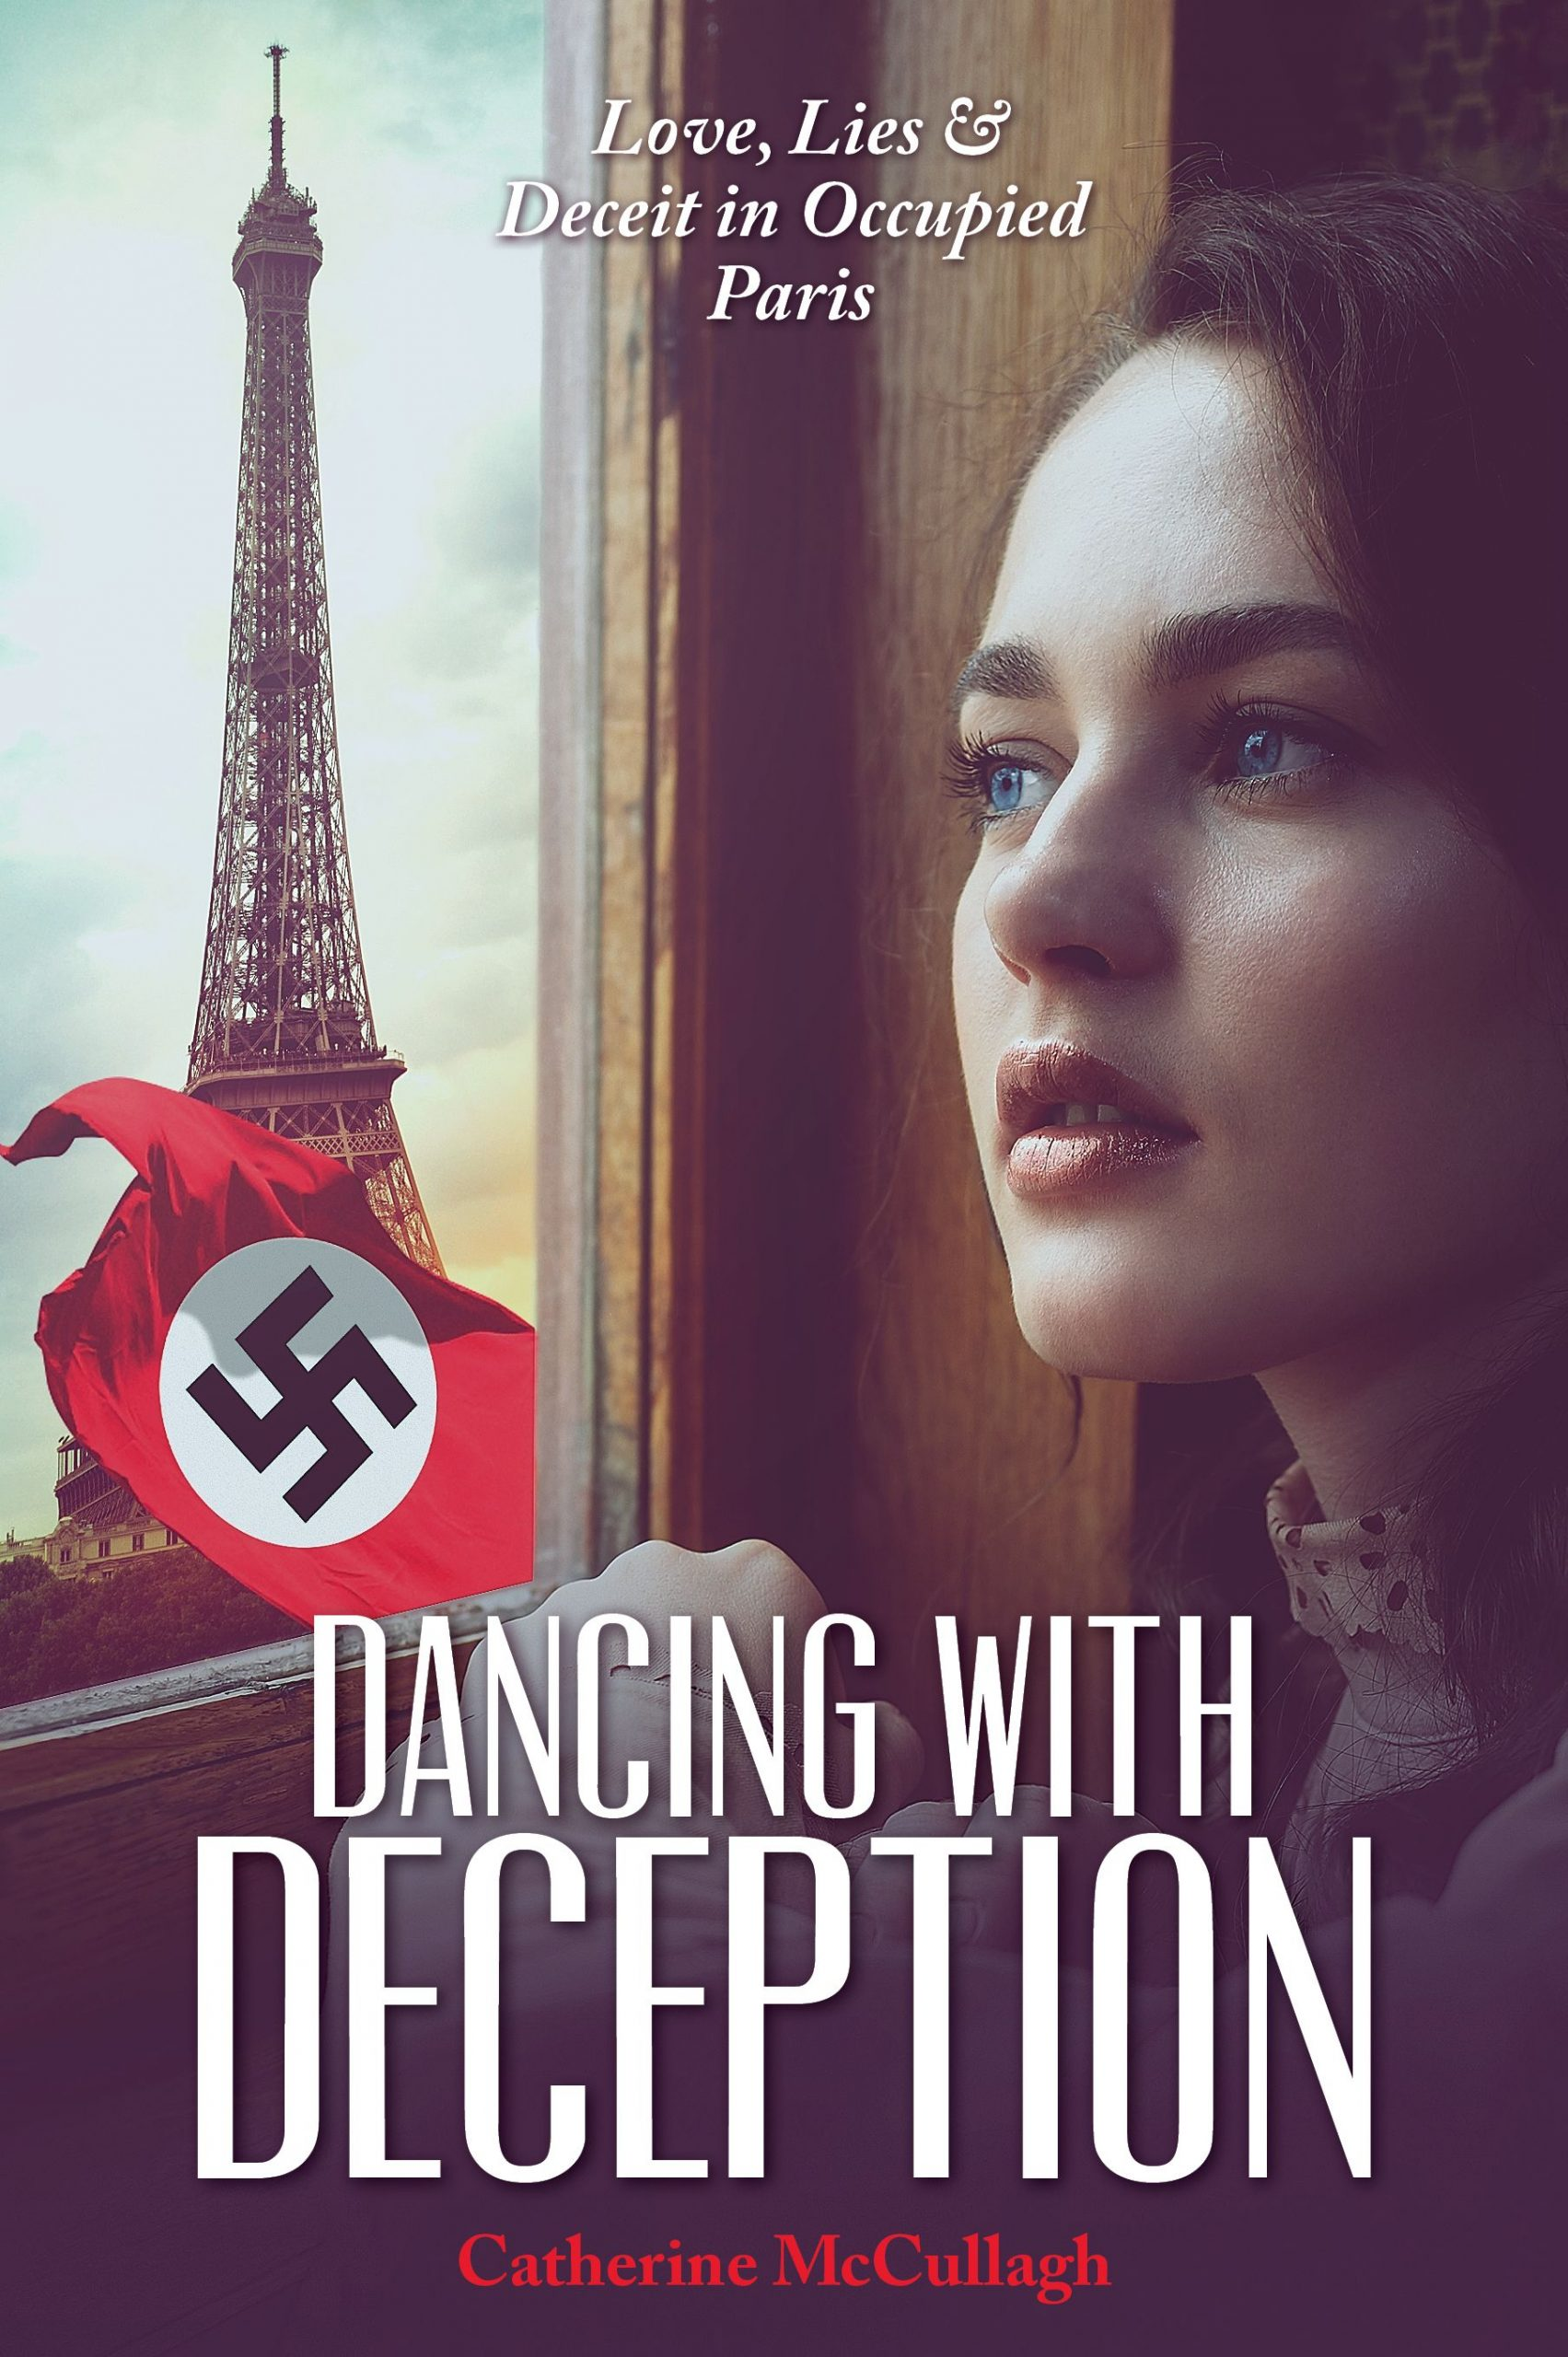 Dancing with Deception – Love, Lies & Deception